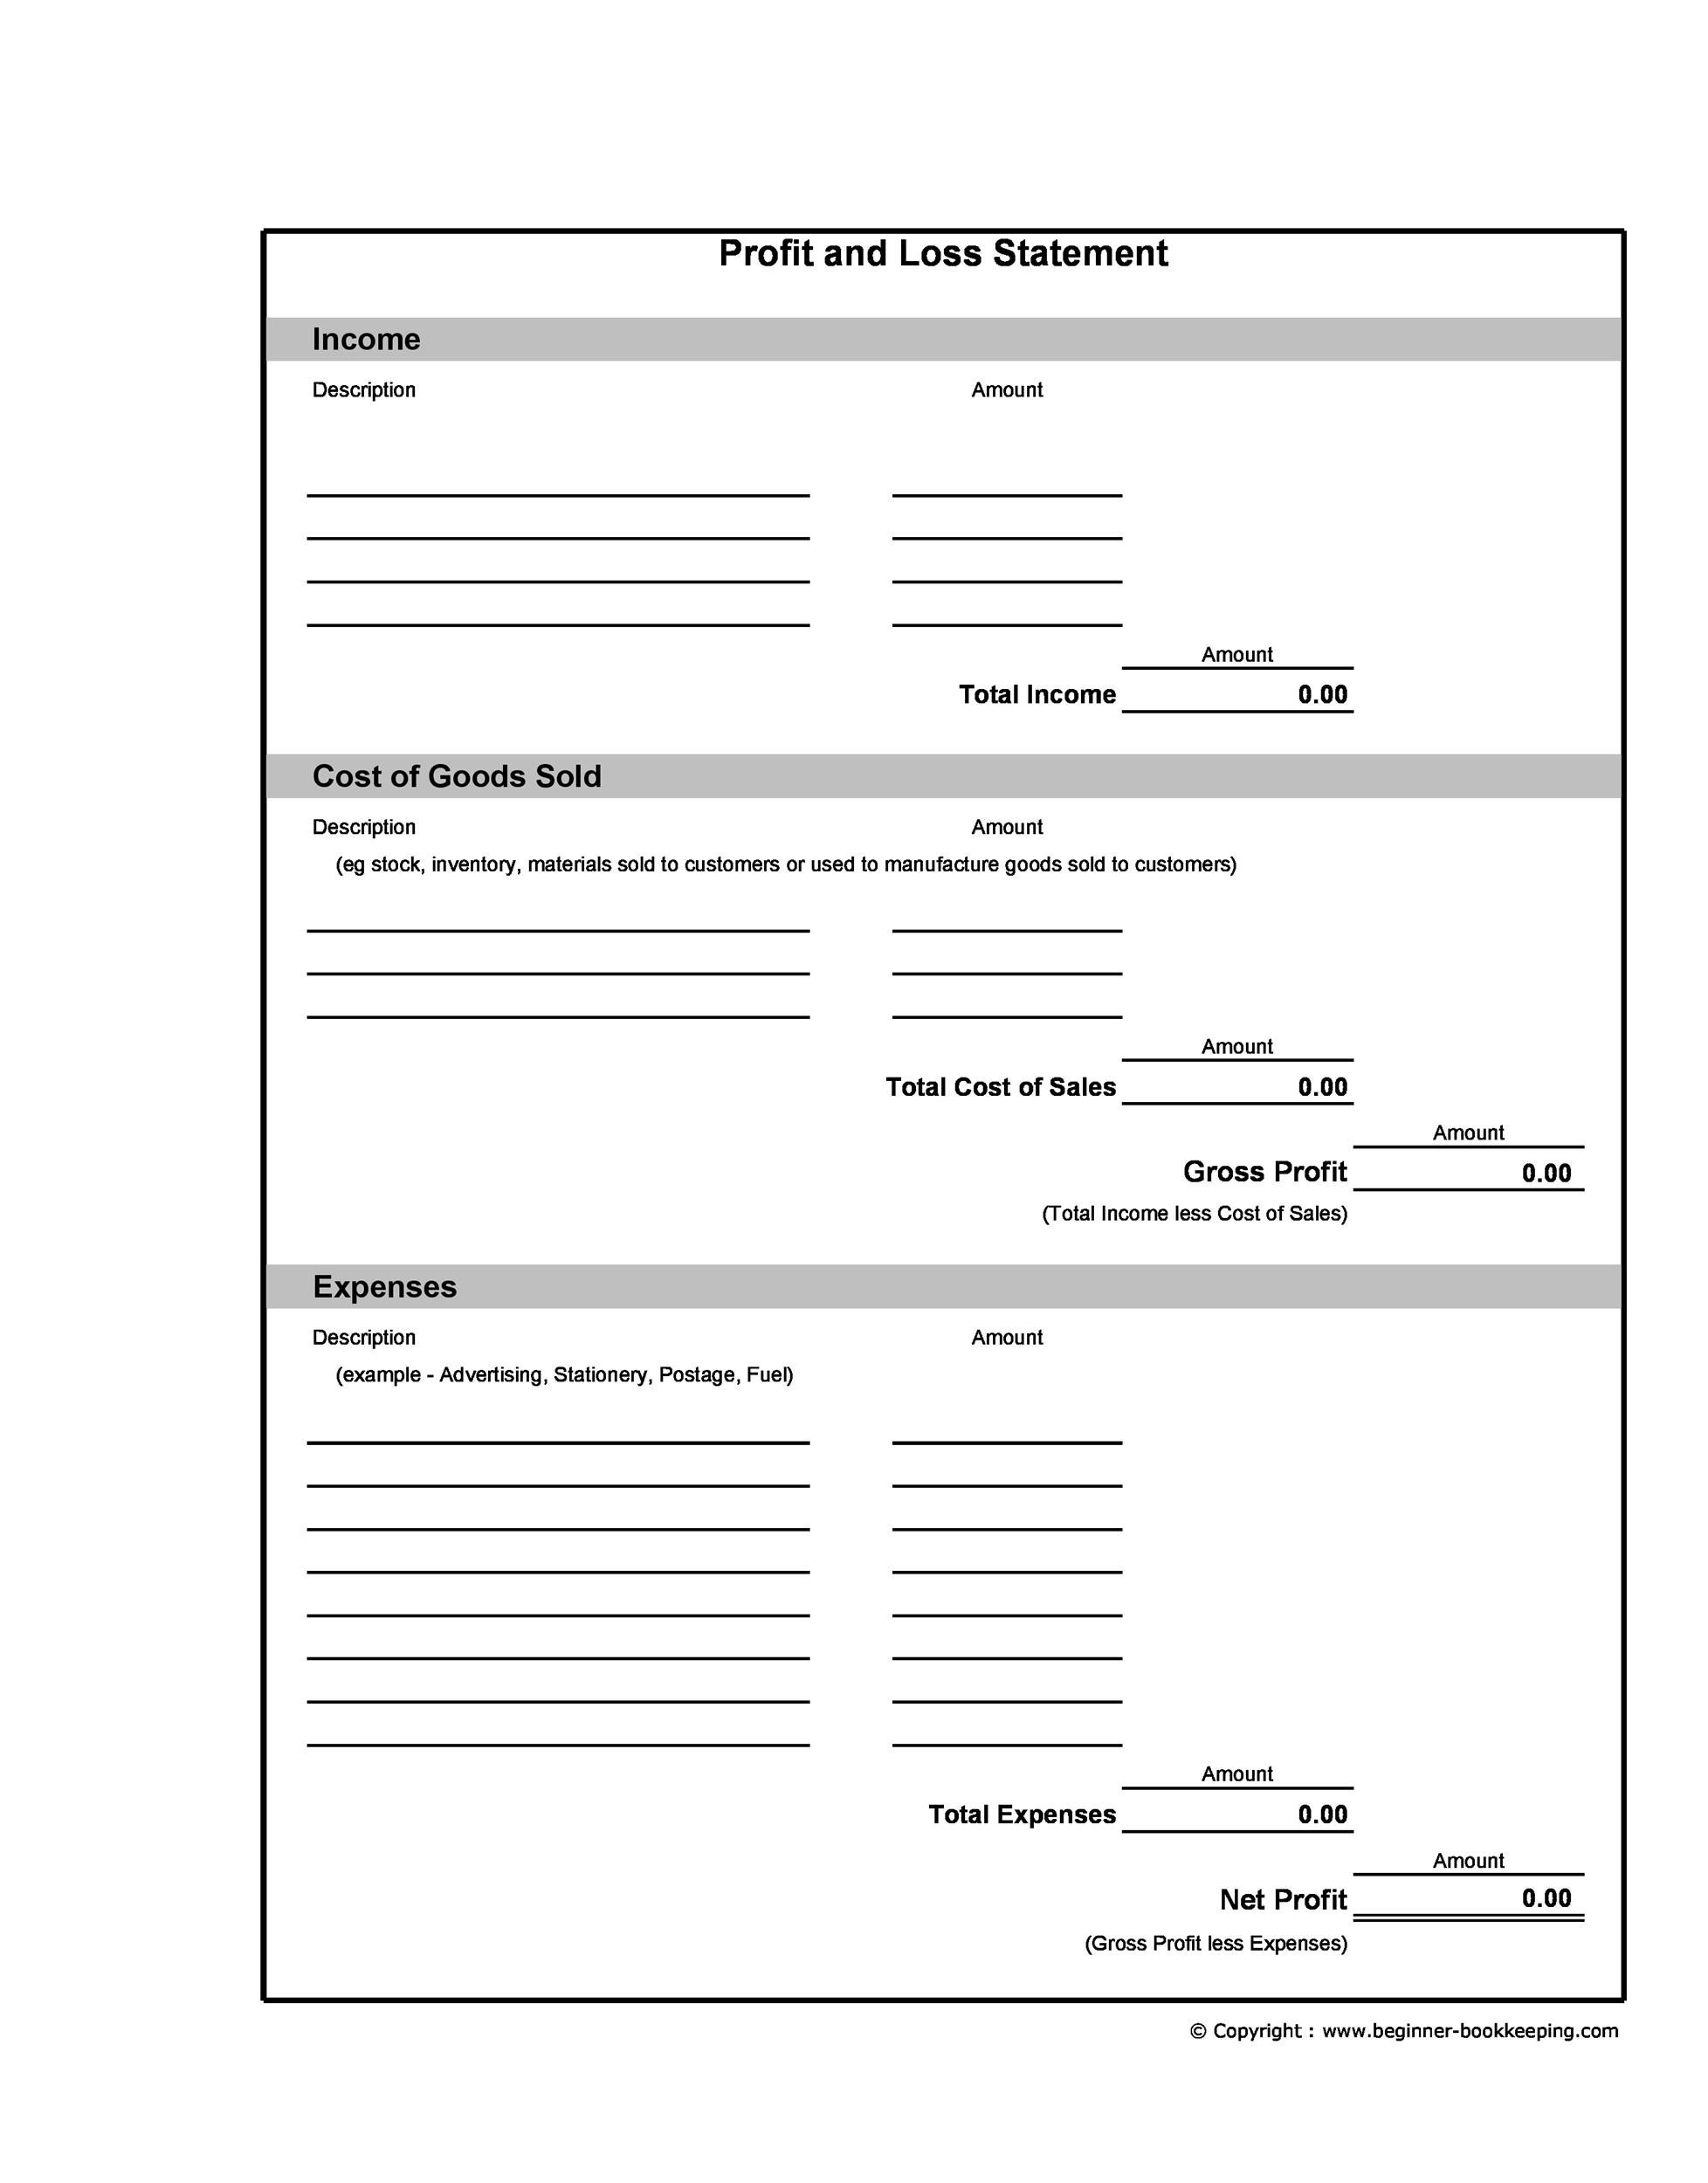 Free Profit and Loss Statement Template 26